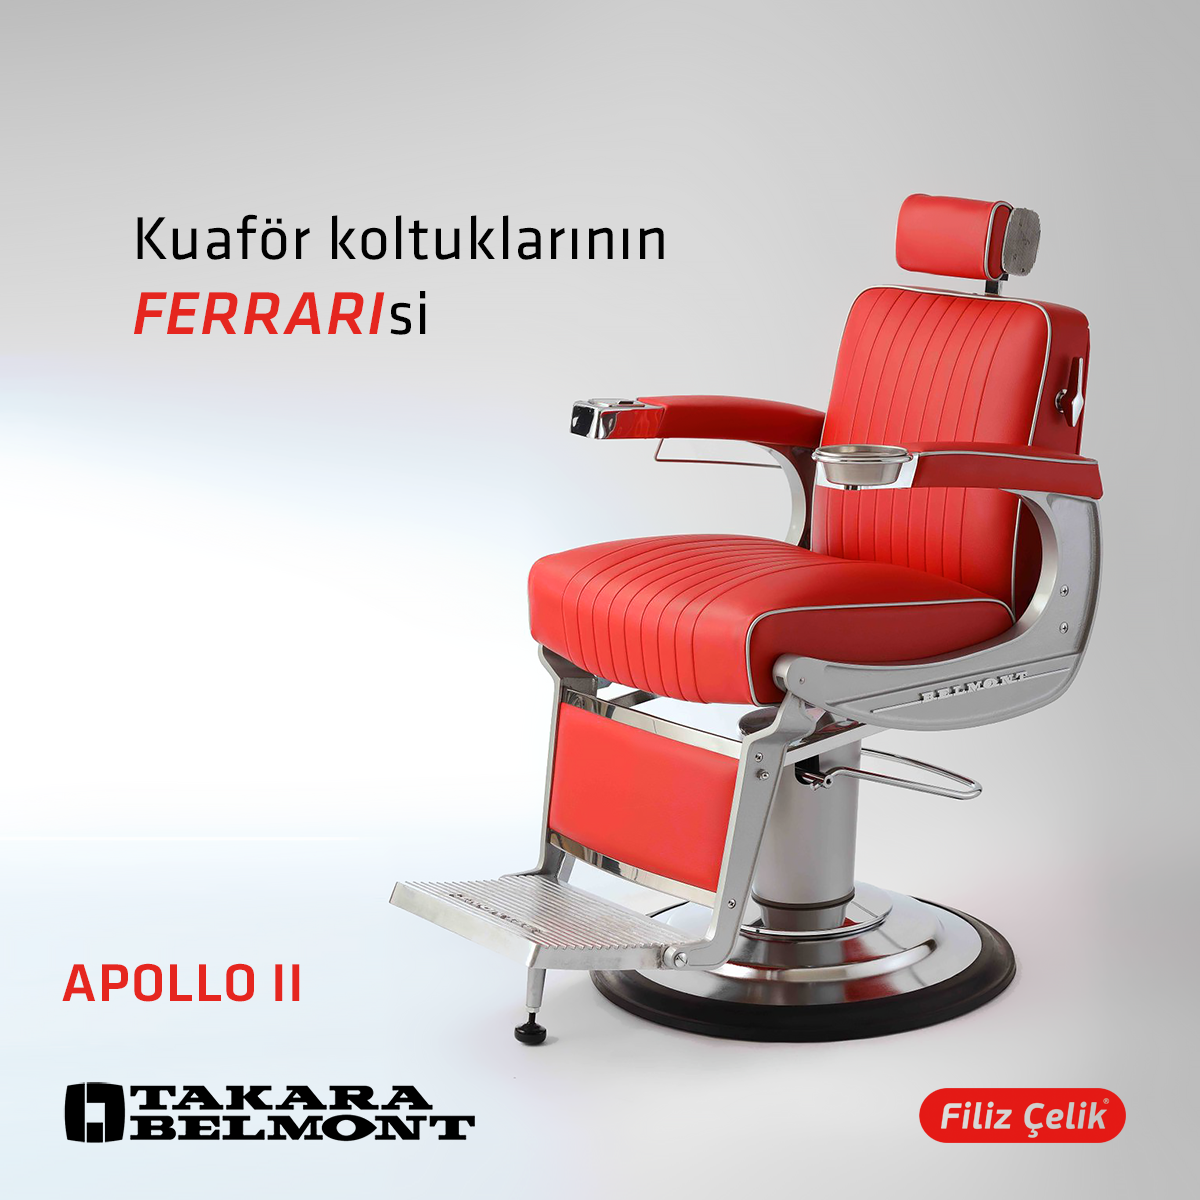 Takara Belmont Turkiye Distributoru Filiz Celik Http Www Alpeda Com Tr Takara Belmont Kuafor Ekipmanlari Chair Design Barber Chair Salon Furniture